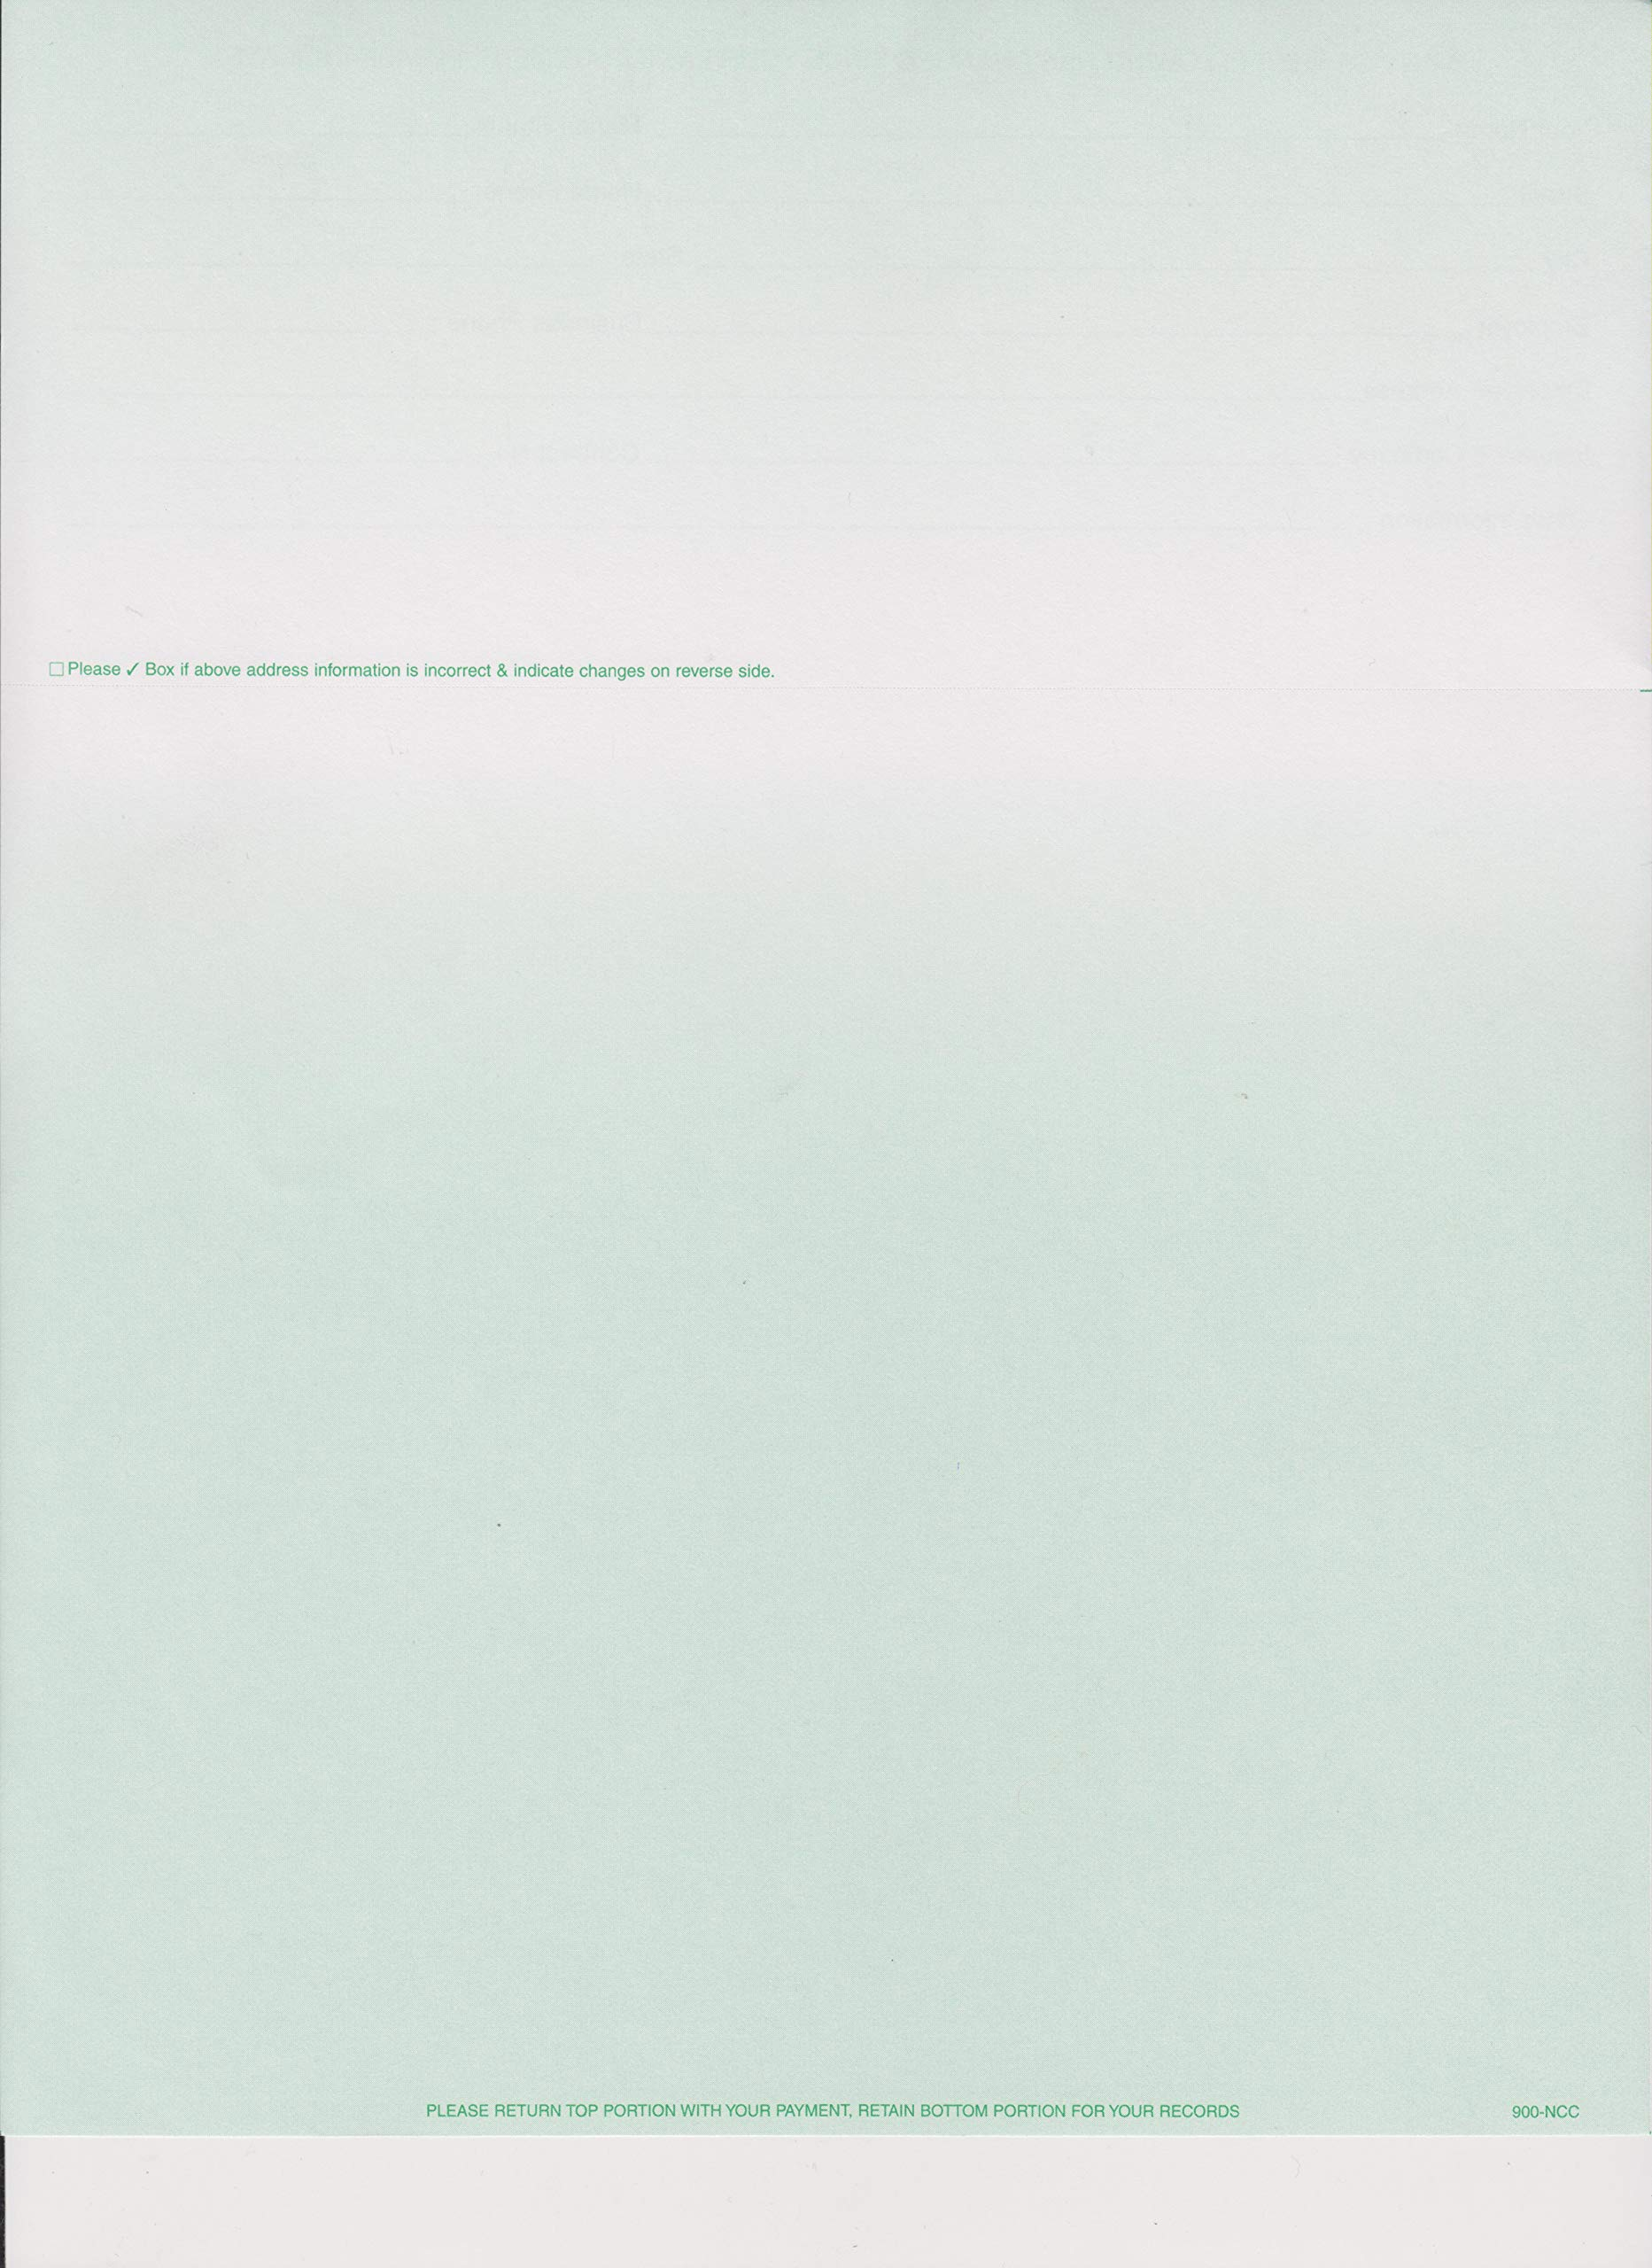 2500 COLORED BLANK PERFORATED STATEMENT PAPER WITHOUT CREDIT CARDS (GREEN)